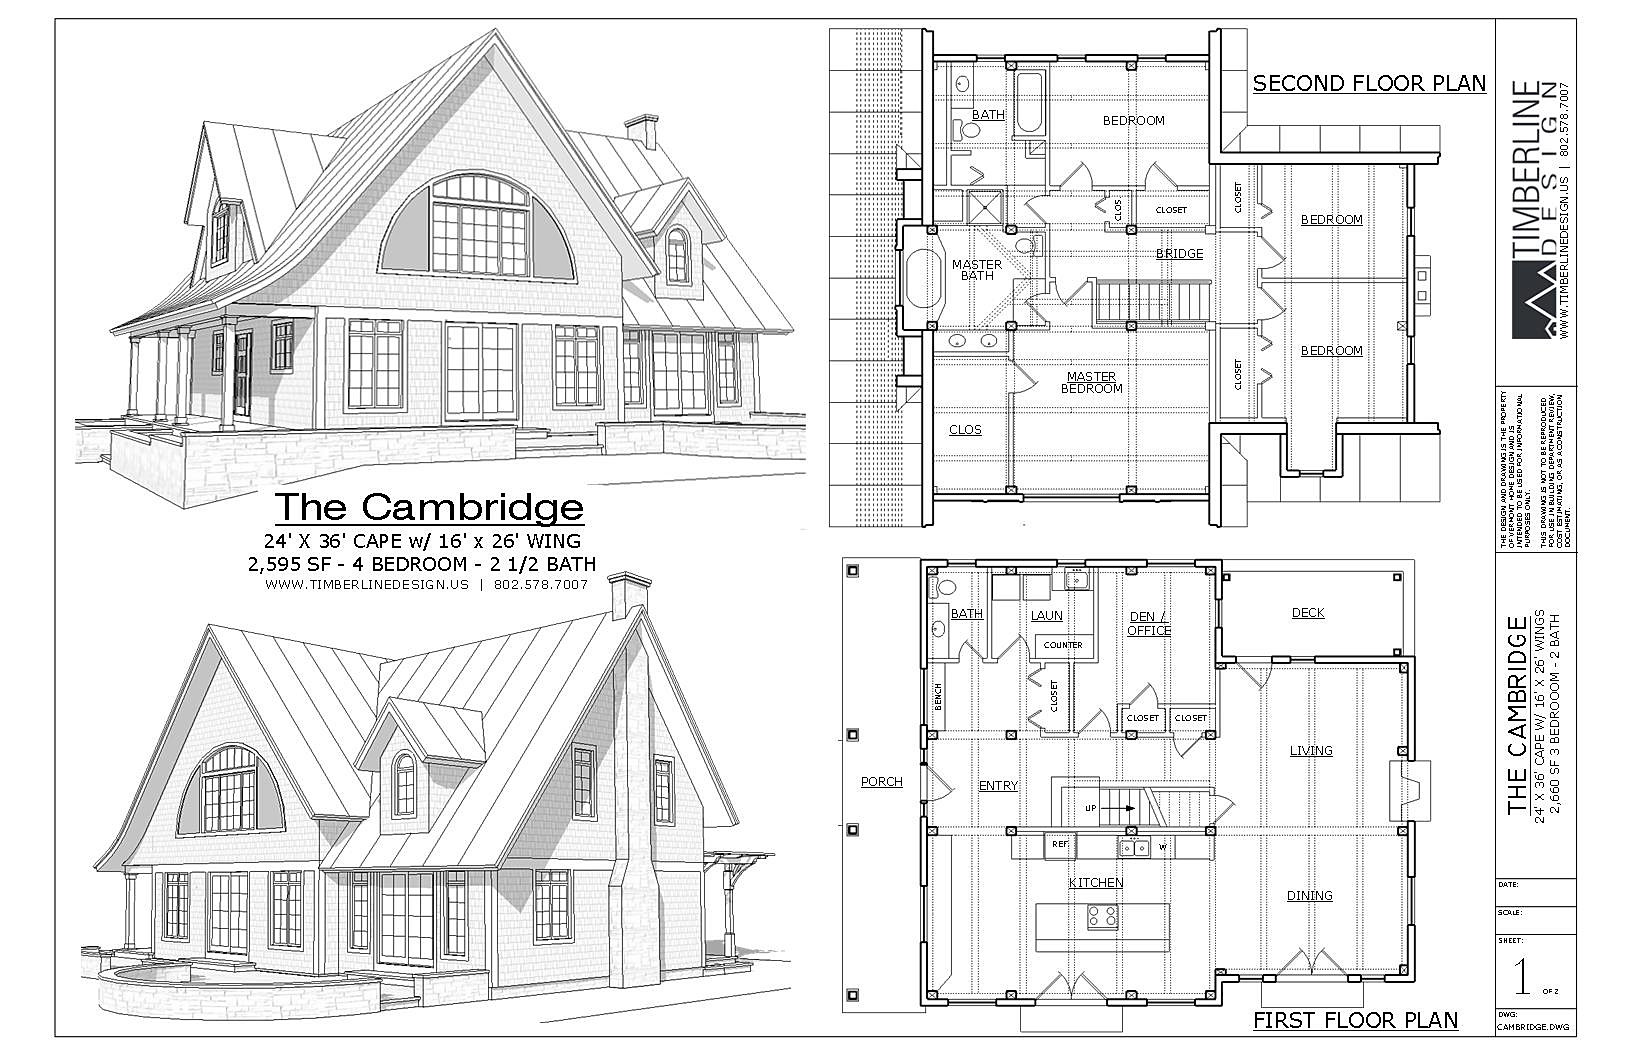 The Cambridge Craftsman Style Timber Frame House Plans 2595 sf